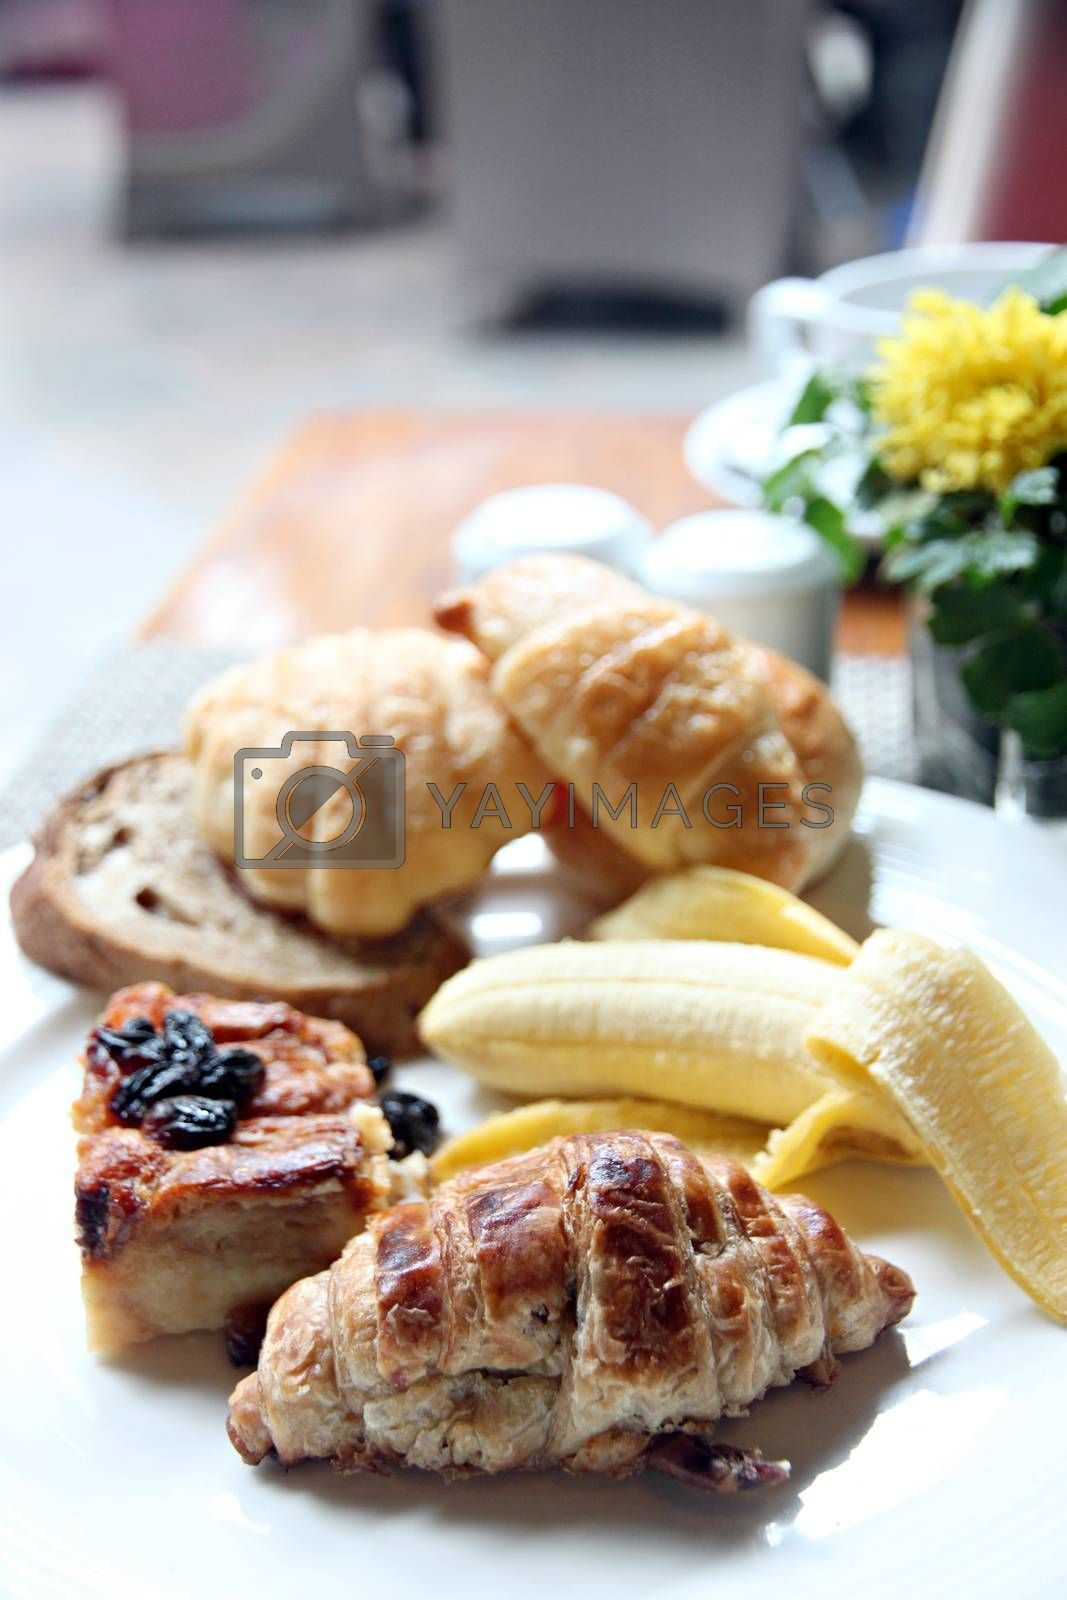 Banana bread sheet and toast in a white dish of breakfast.